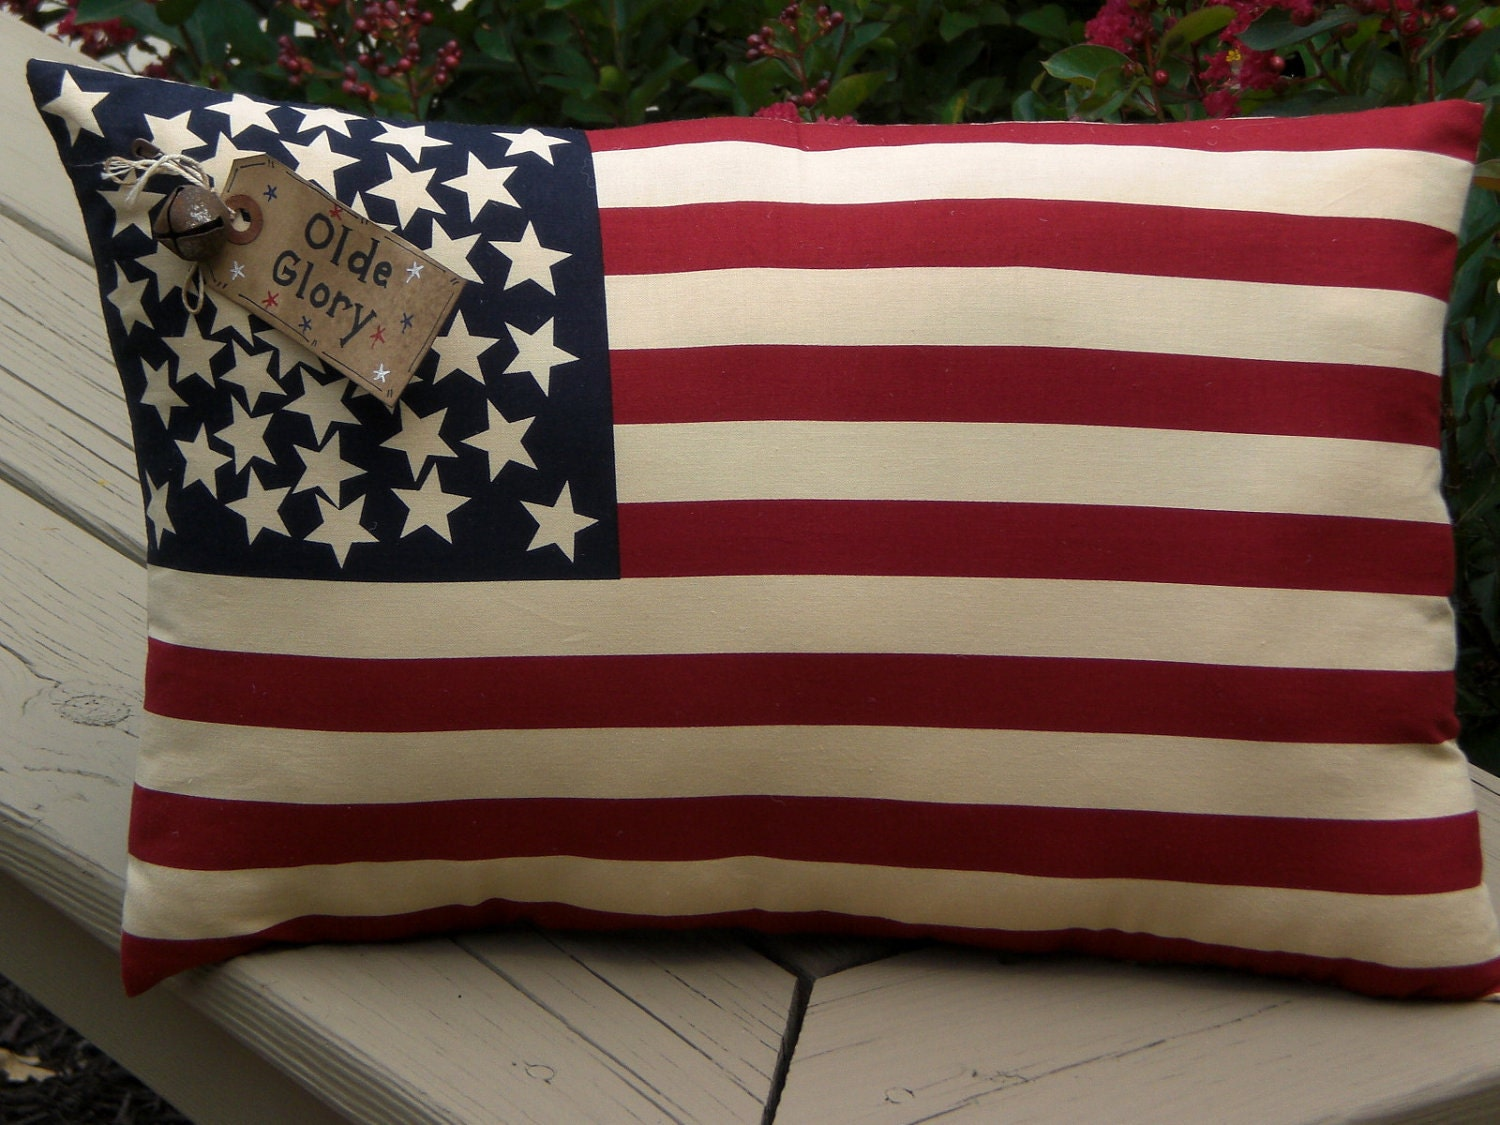 Primitive - American - USA - 16 x 9  Flag - Pillow - Shelf Sitter - Americana - Proud - Olde Glory - Patriotic - 4th of July - Accent Pillow